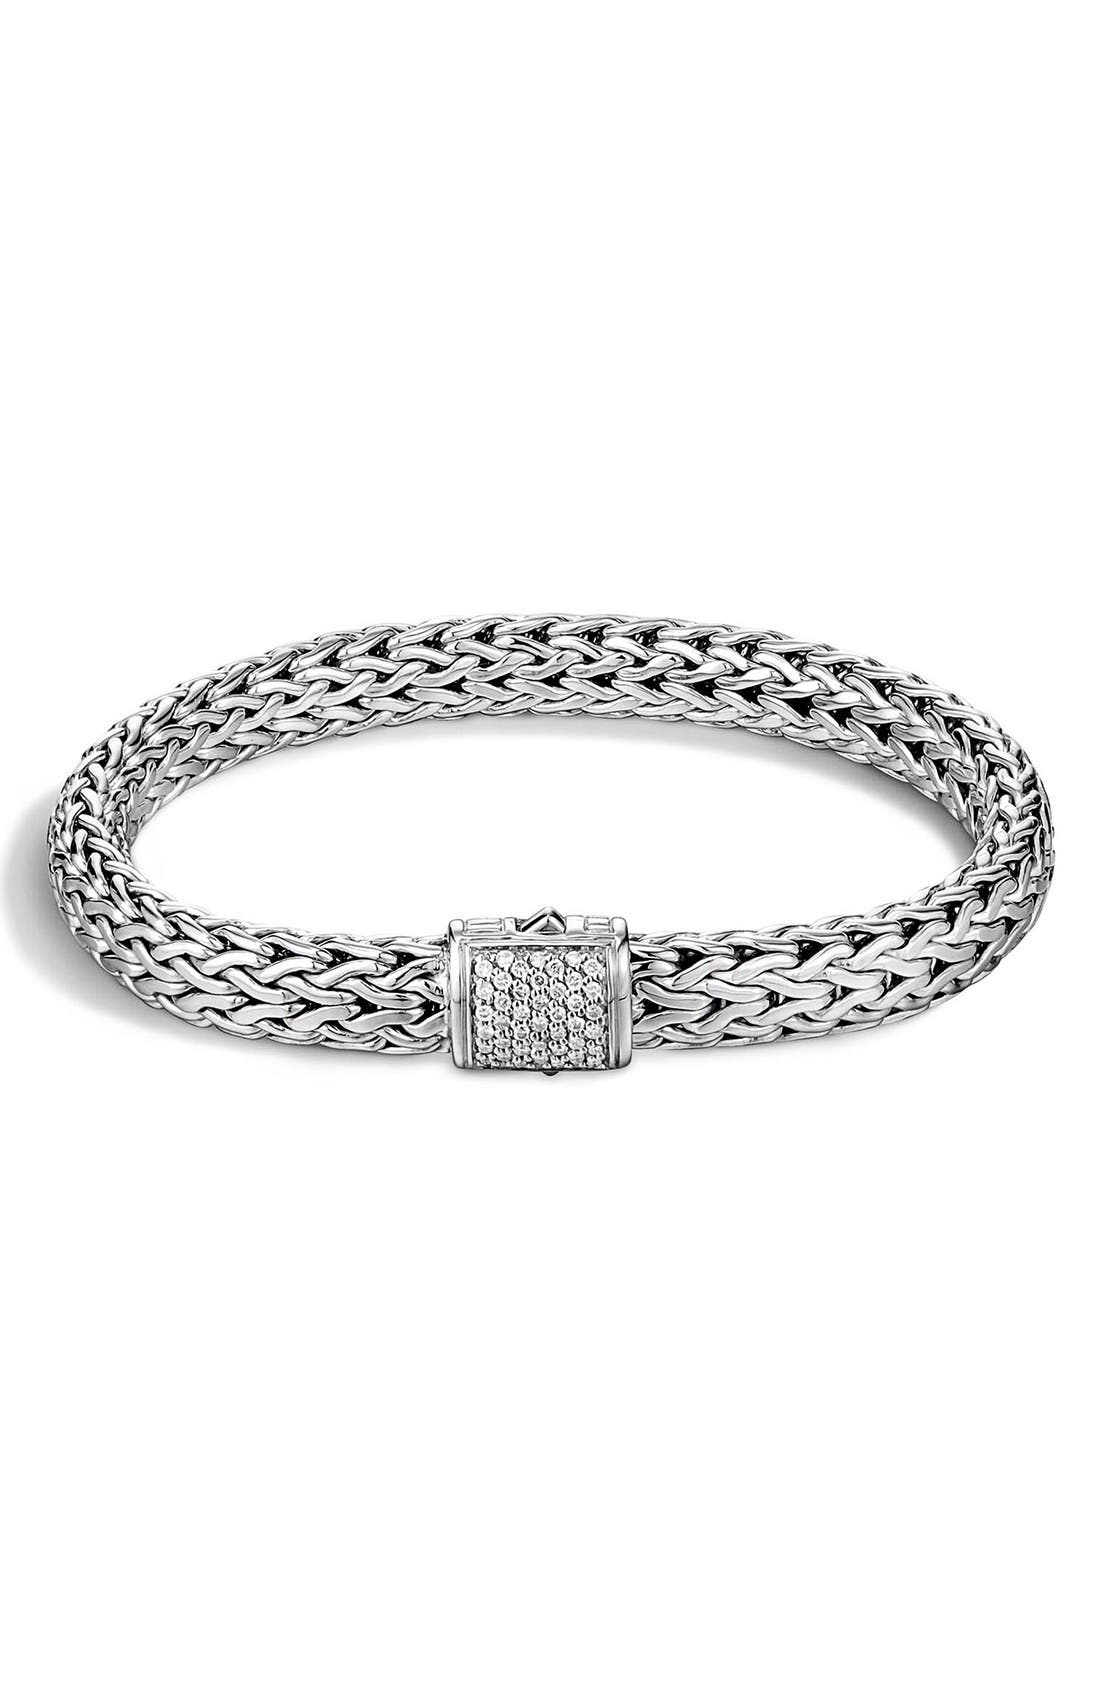 Classic Chain 7.5mm Diamond Bracelet,                         Main,                         color, Silver